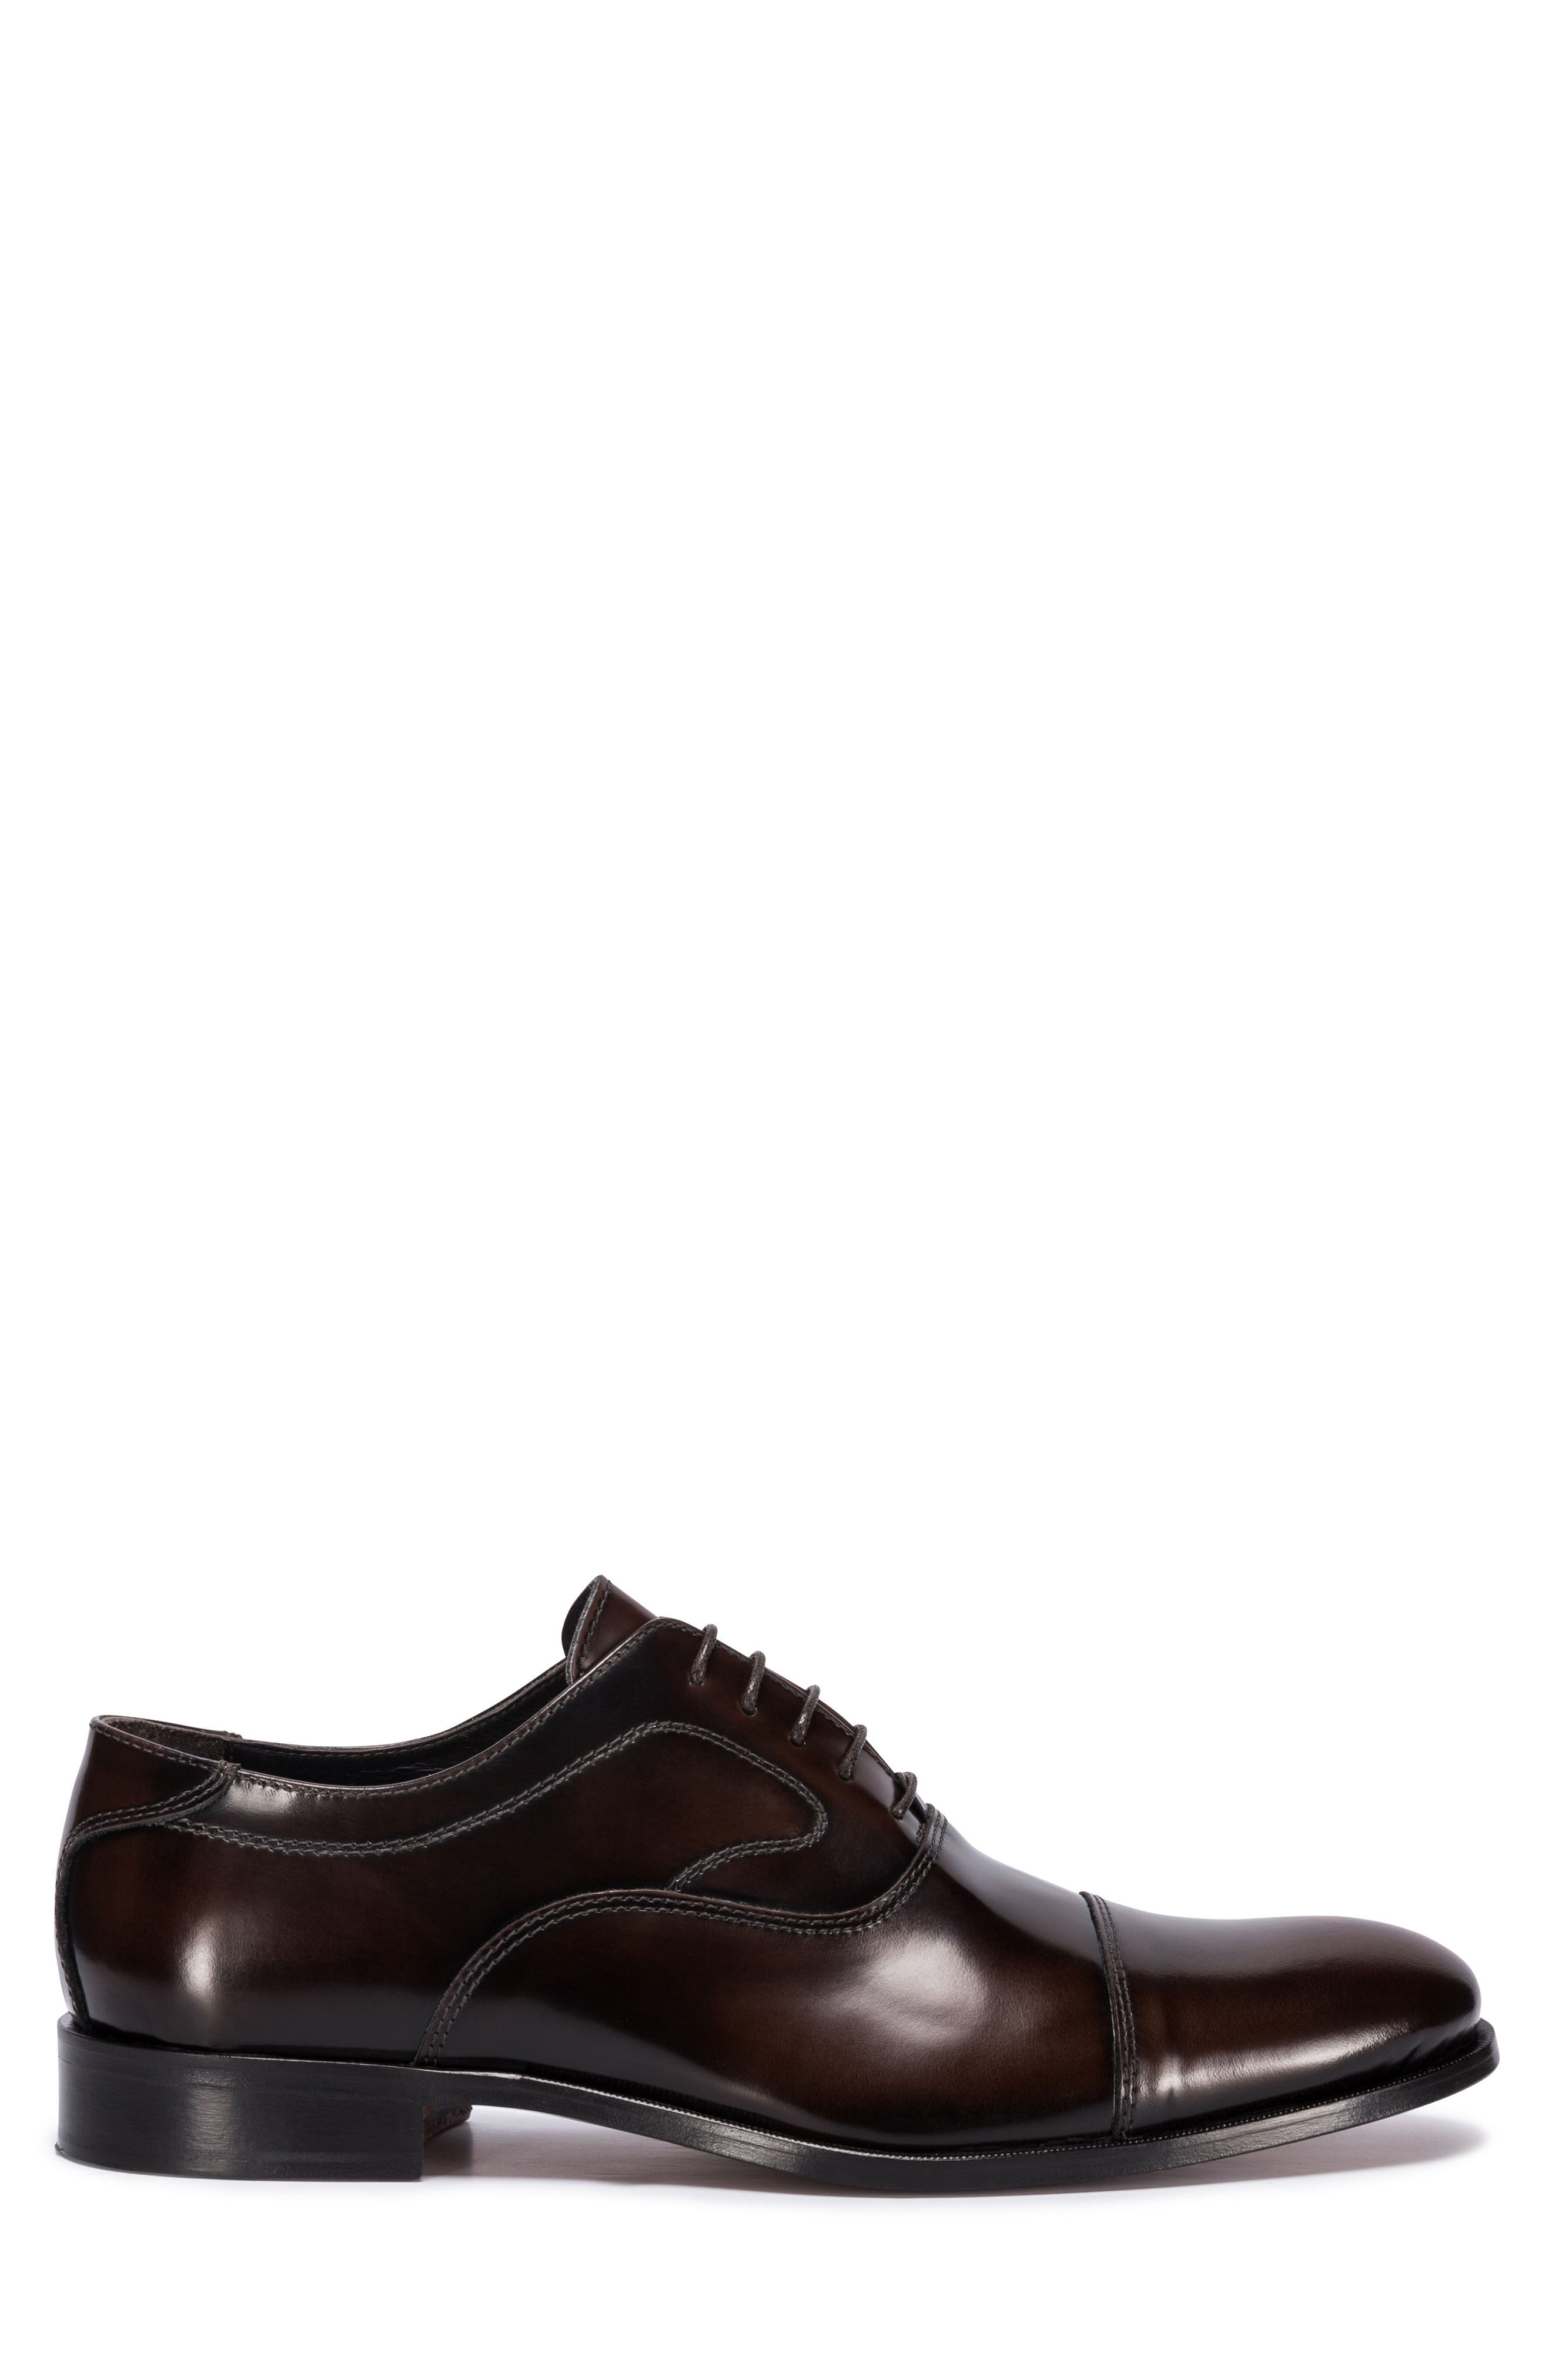 Garda Cap Toe Oxford,                             Alternate thumbnail 3, color,                             203